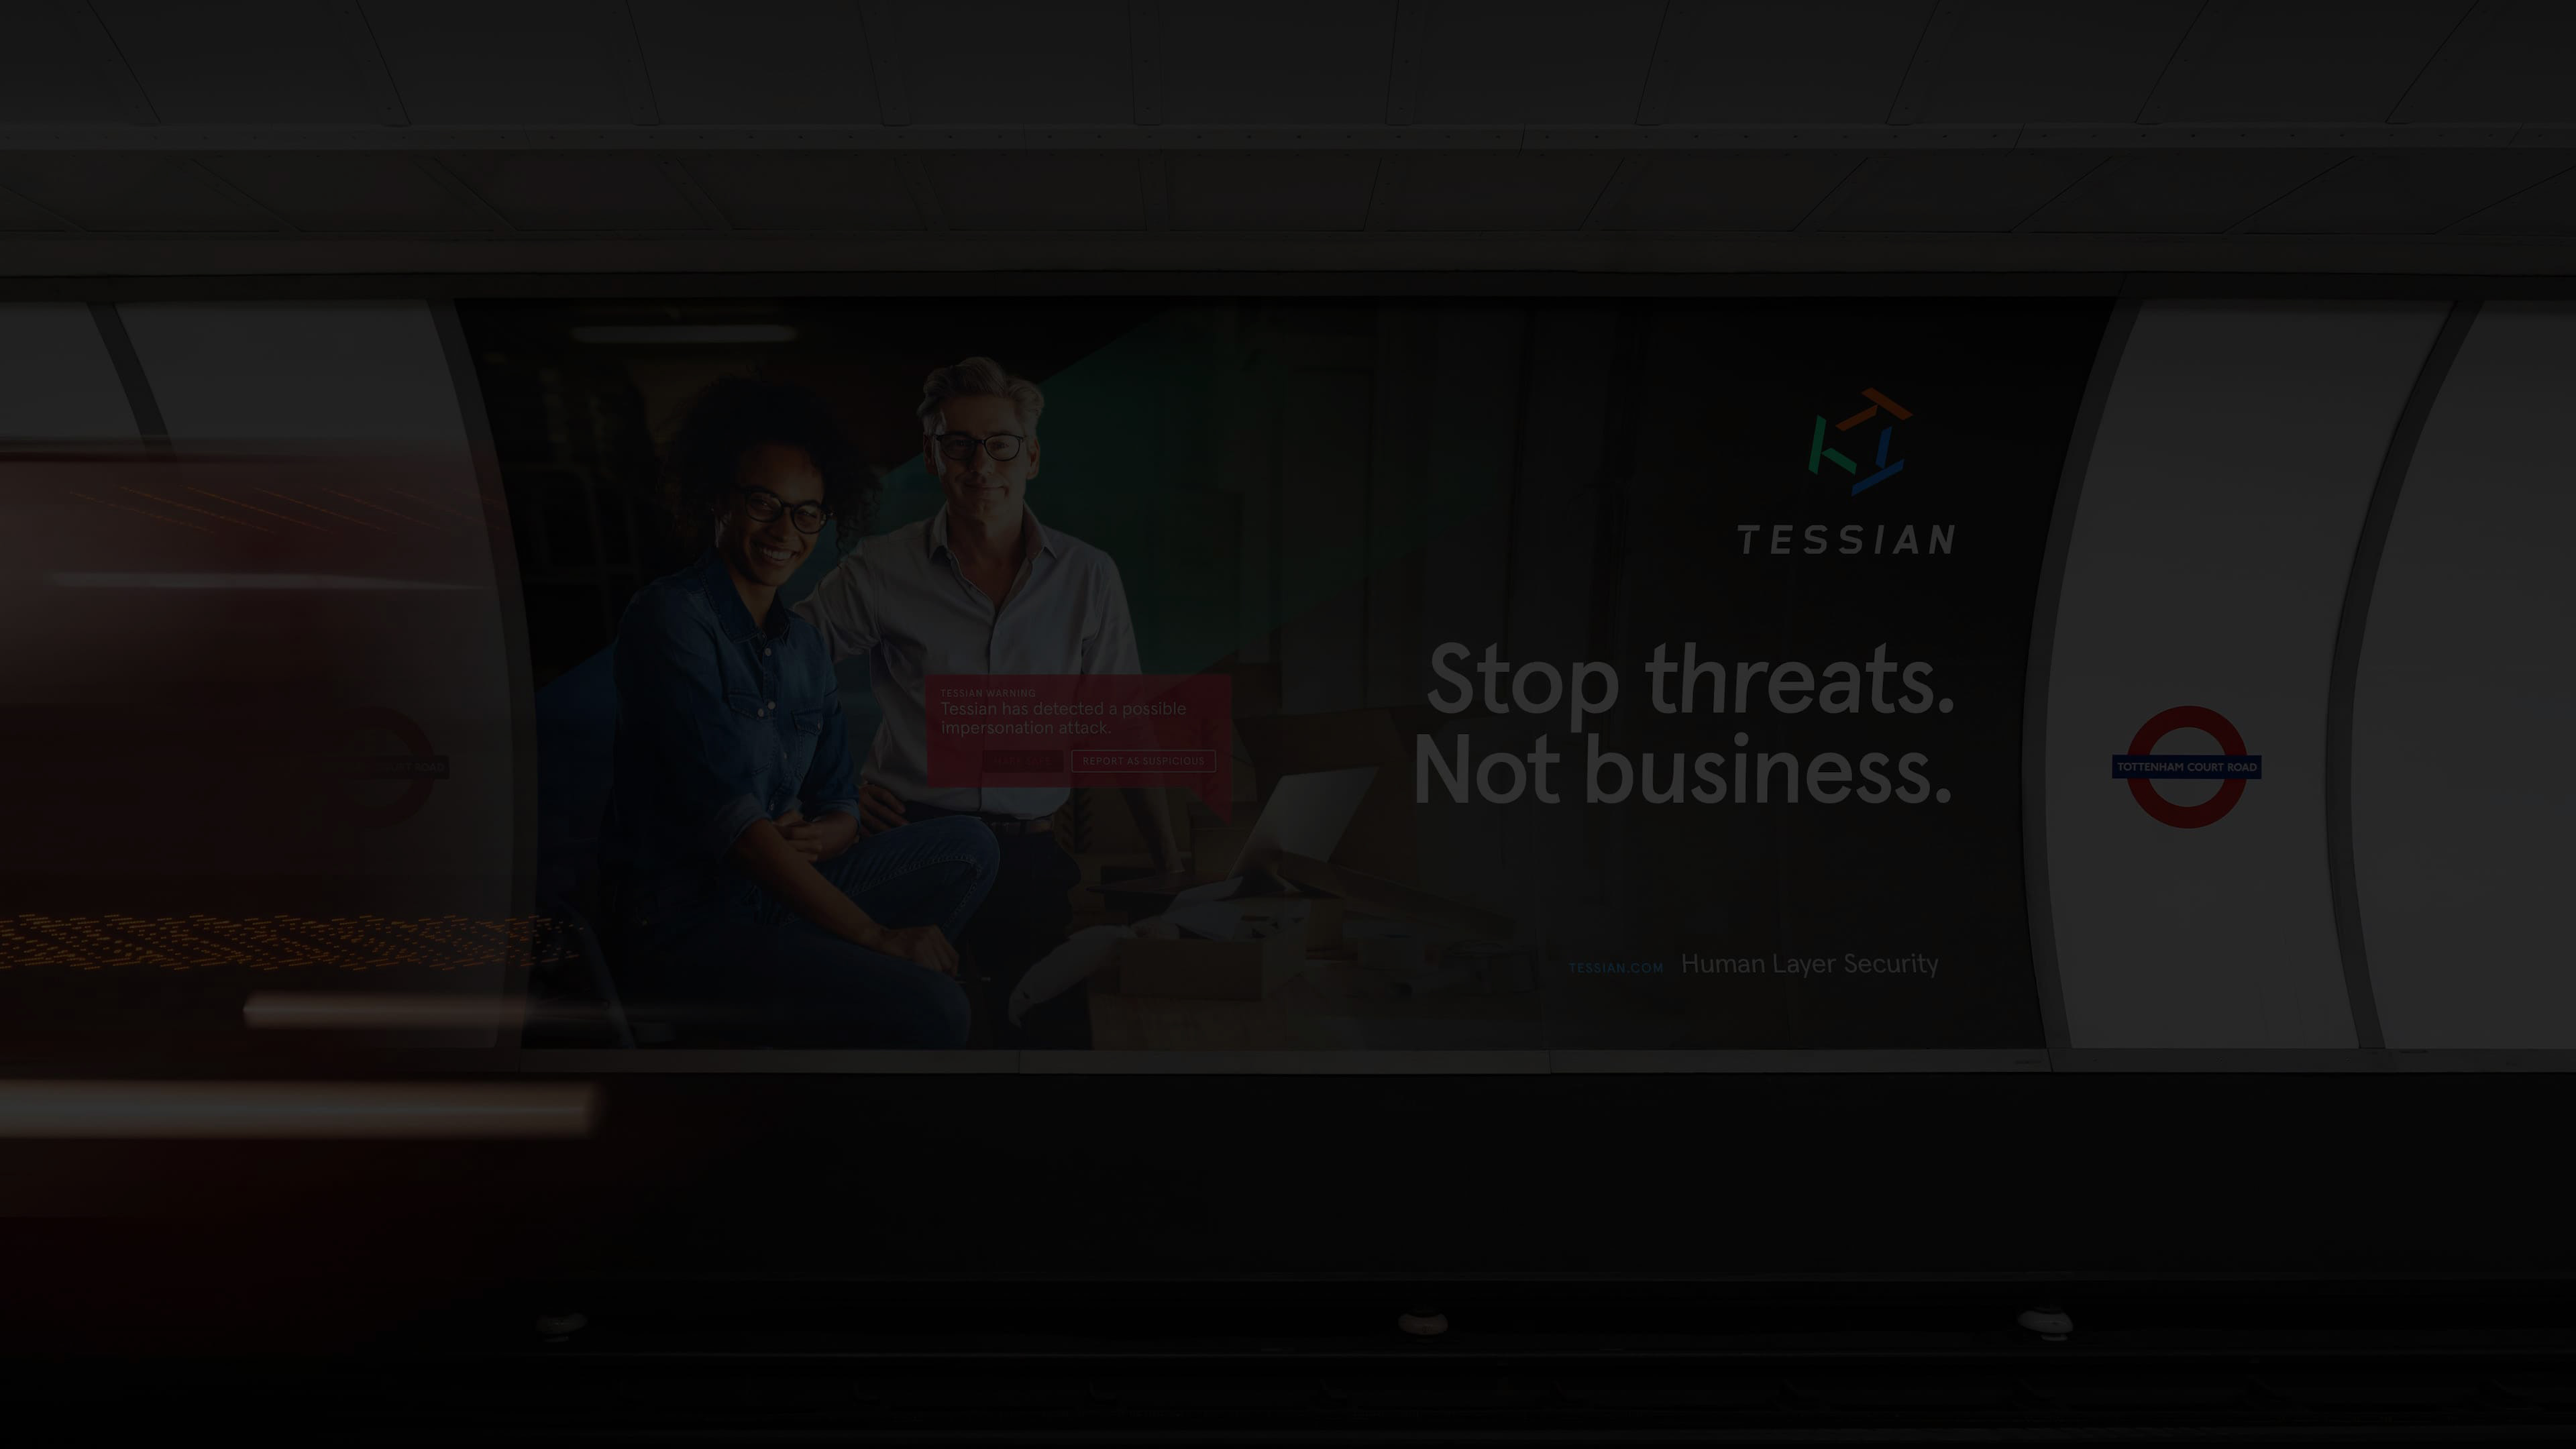 A digital-first brand identity for Sequoia-backed cybersecurity firm Tessian — the world's first Human Layer Security platform — as it proposes a new human-first approach to cybersecurity and scales for a global audience of enterprise customers.